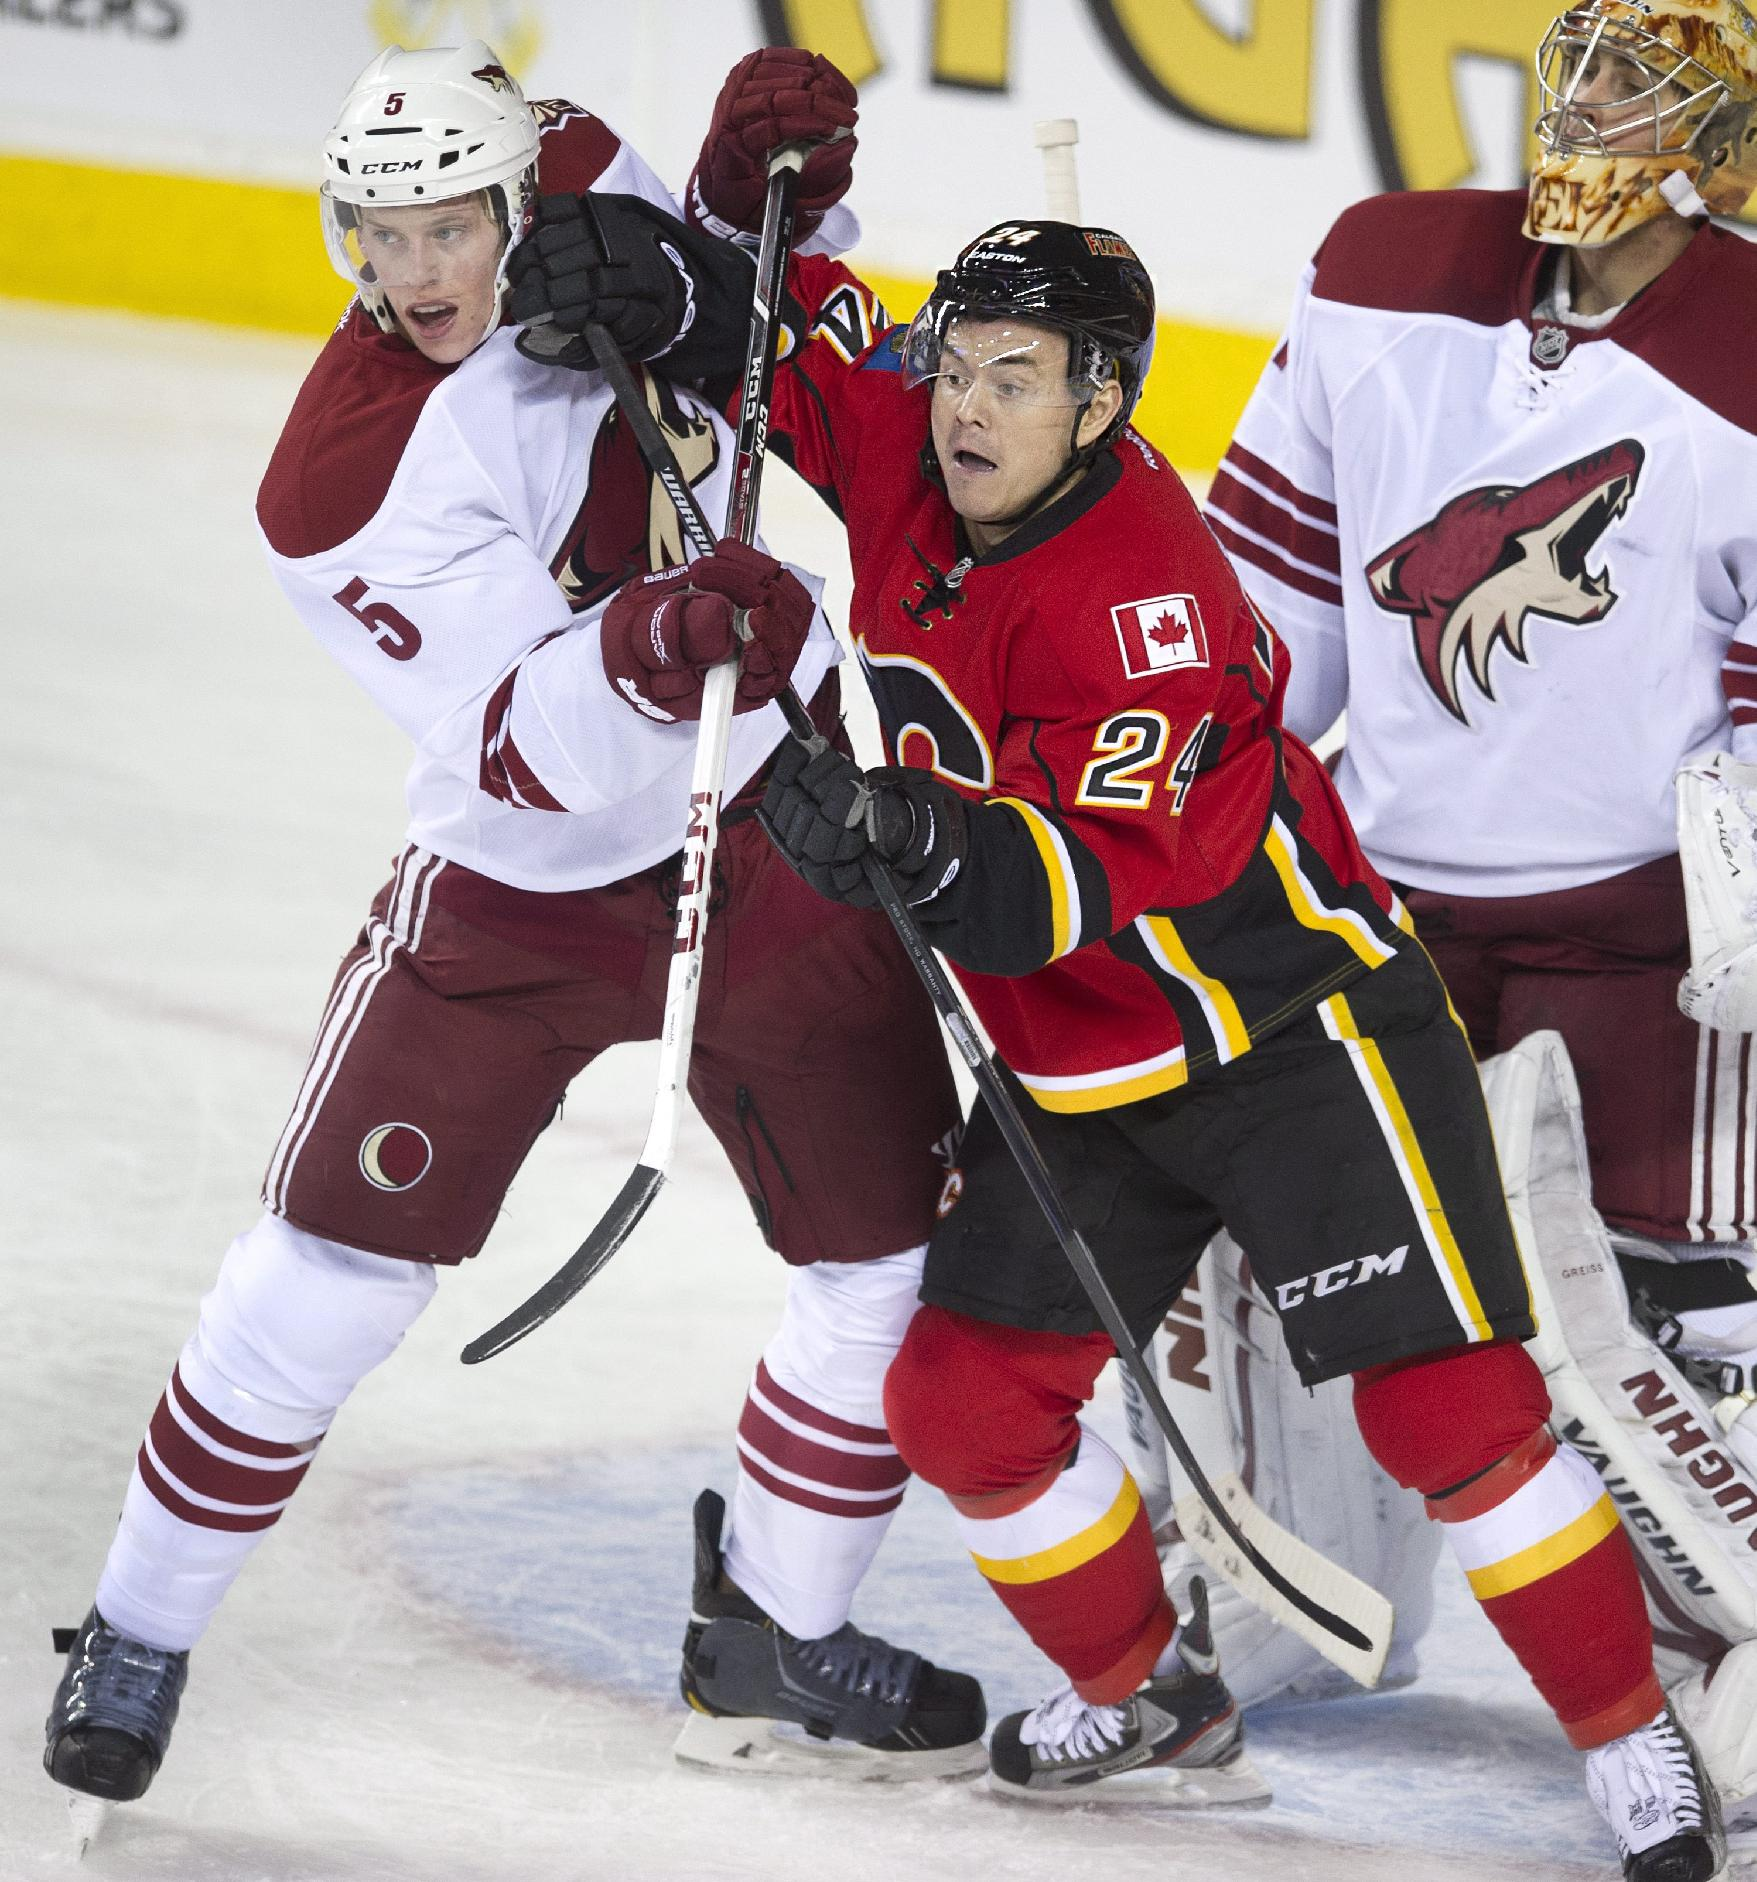 Phoenix Coyotes' Connor Murphy, left, battles with Calgary Flames' Jiri Hudler, from Czech Republic, in front of Phoenix goalie Thomas Greiss, from Germany, during the first period of an NHL hockey game, Wednesday, Dec. 4, 2013 in Calgary, Alberta